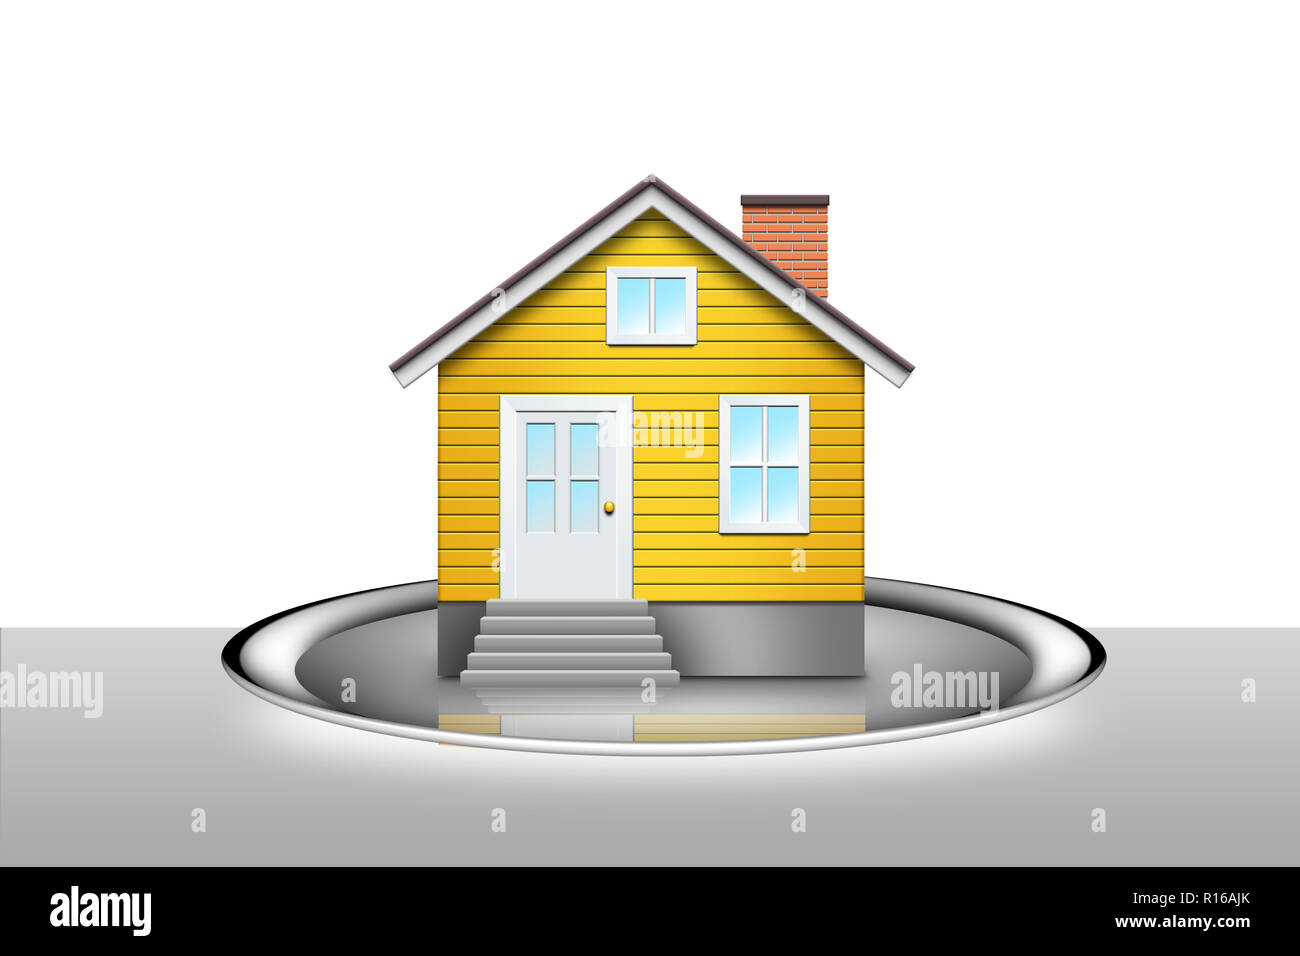 Digital image of house on silver platter - 'hand to on a silver platter' - Stock Image